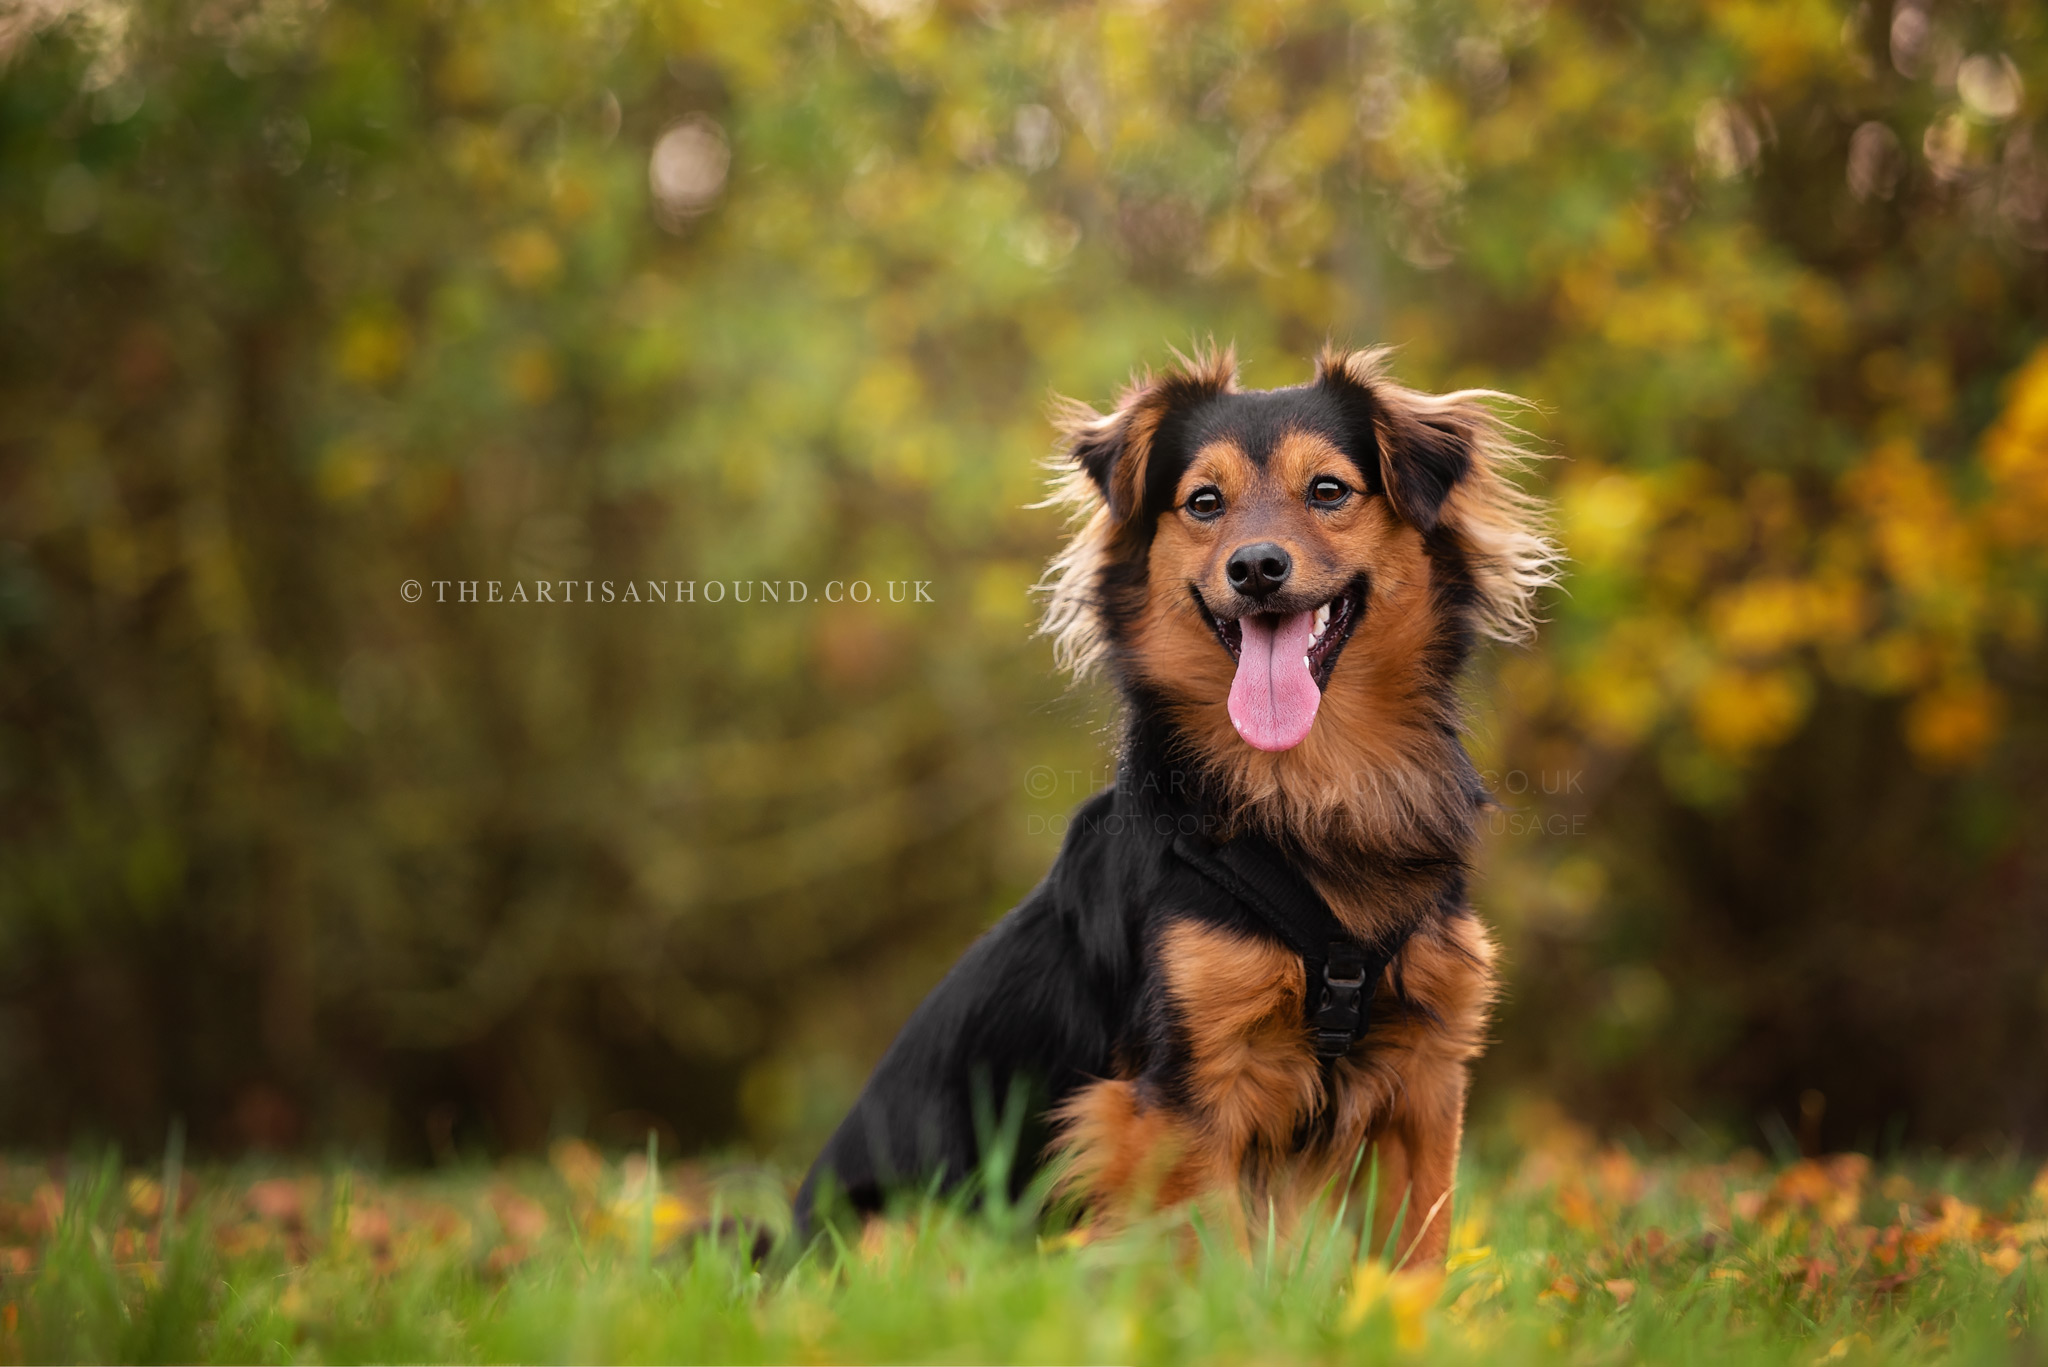 Small black and tan dog sitting in grass in parkland